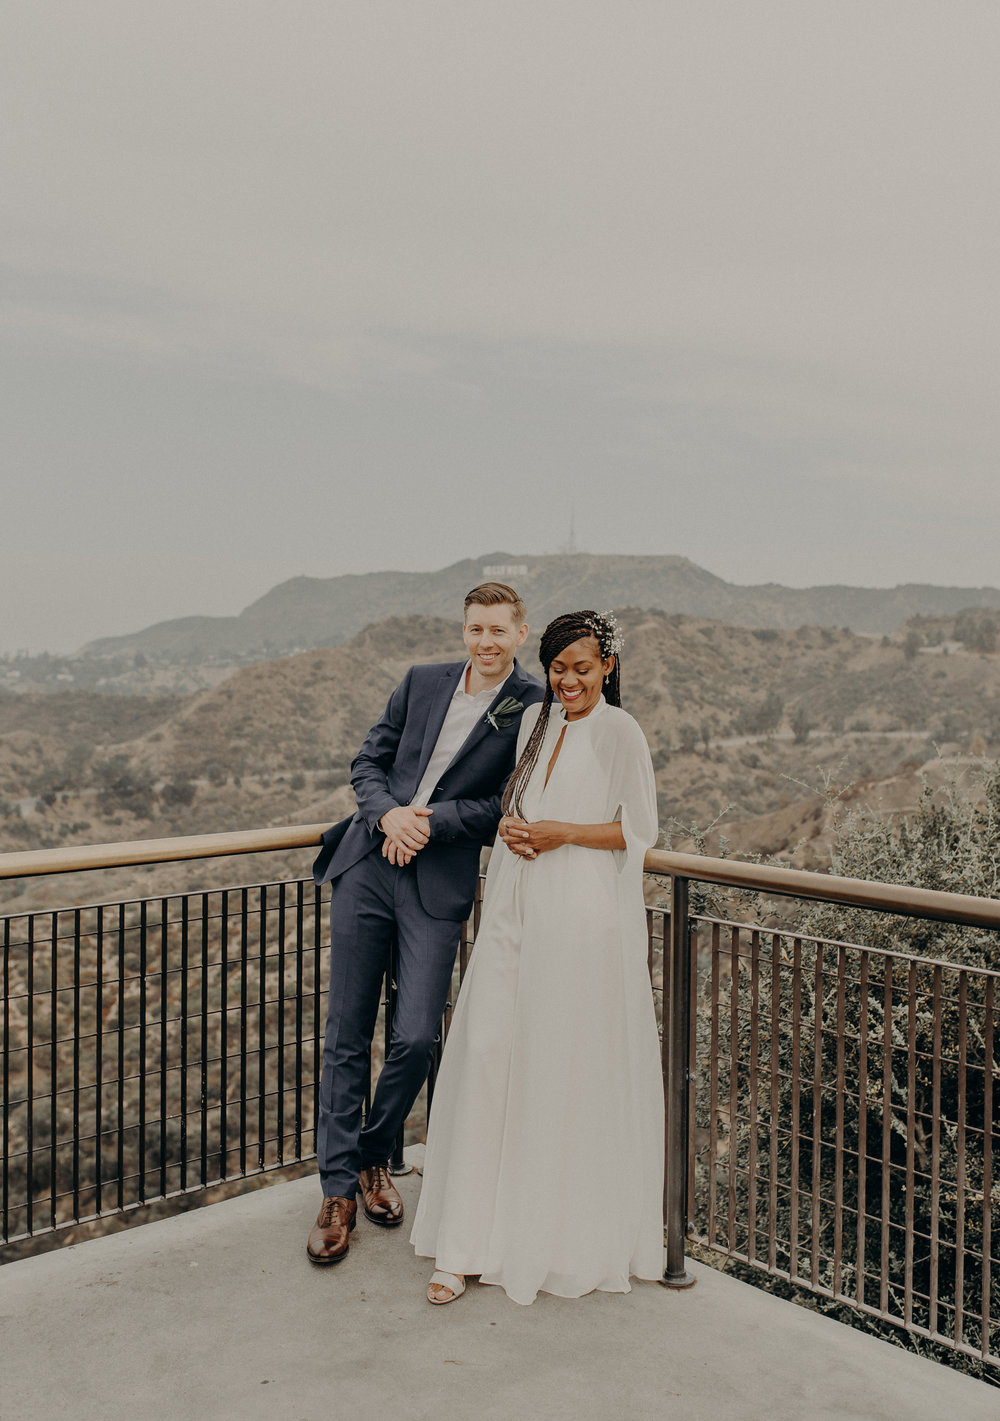 Los Angeles Wedding Photographer - Griffith Observatory Elopement - Long Beach wedding photo - IsaiahAndTaylor.com-074.jpg